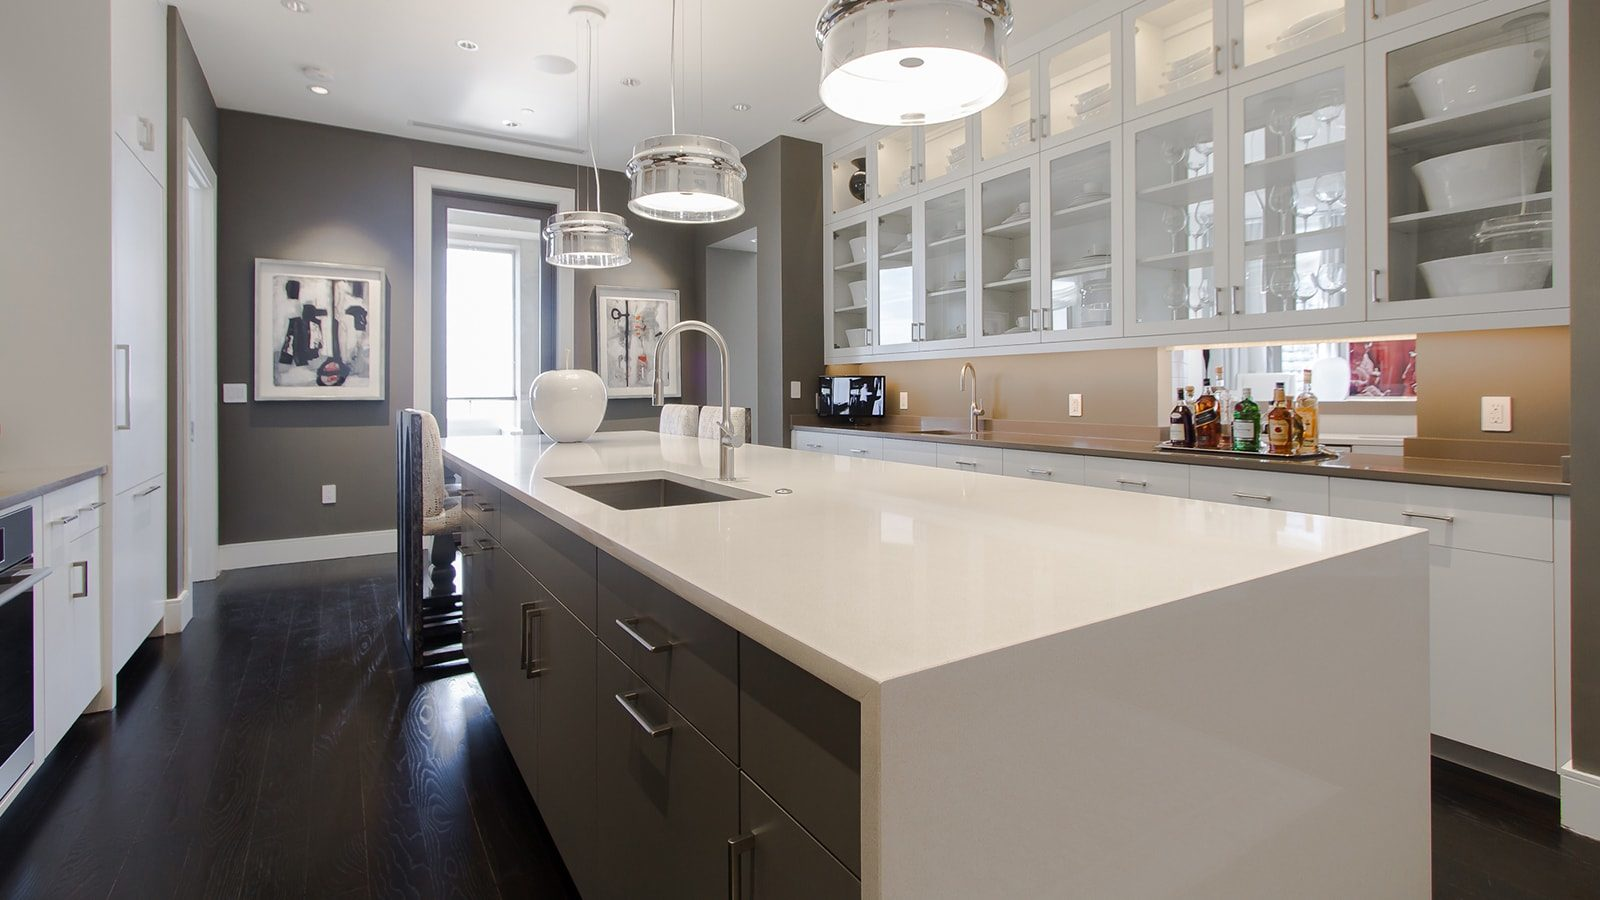 Beautiful kitchen with quartz countertops